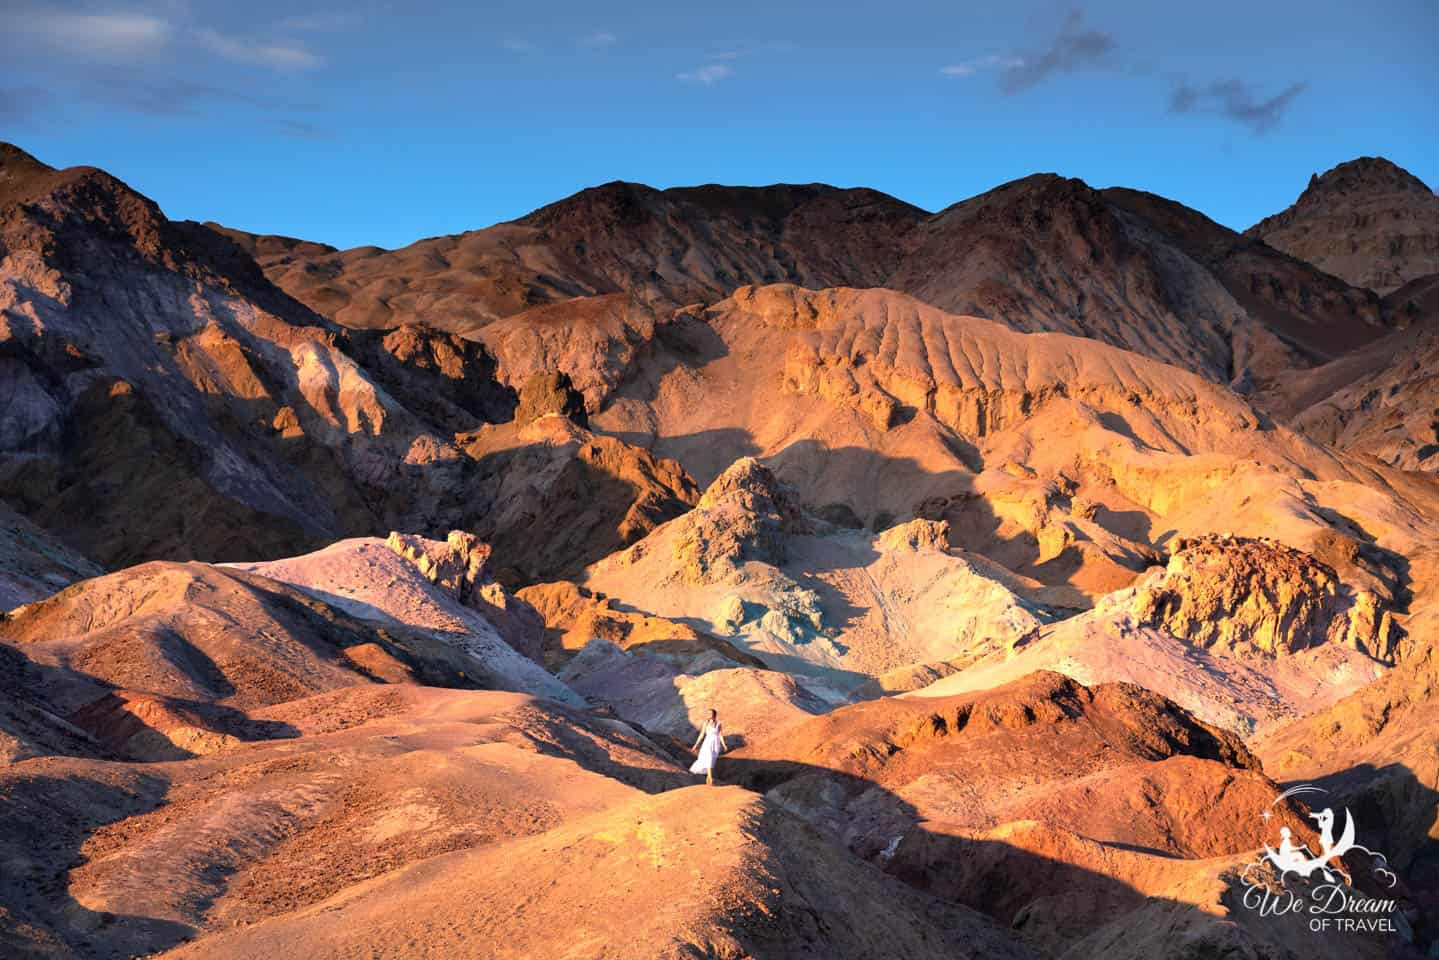 Walking the short trail to a picturesque perch at Artist Palette Overlook in Death Valley NP.